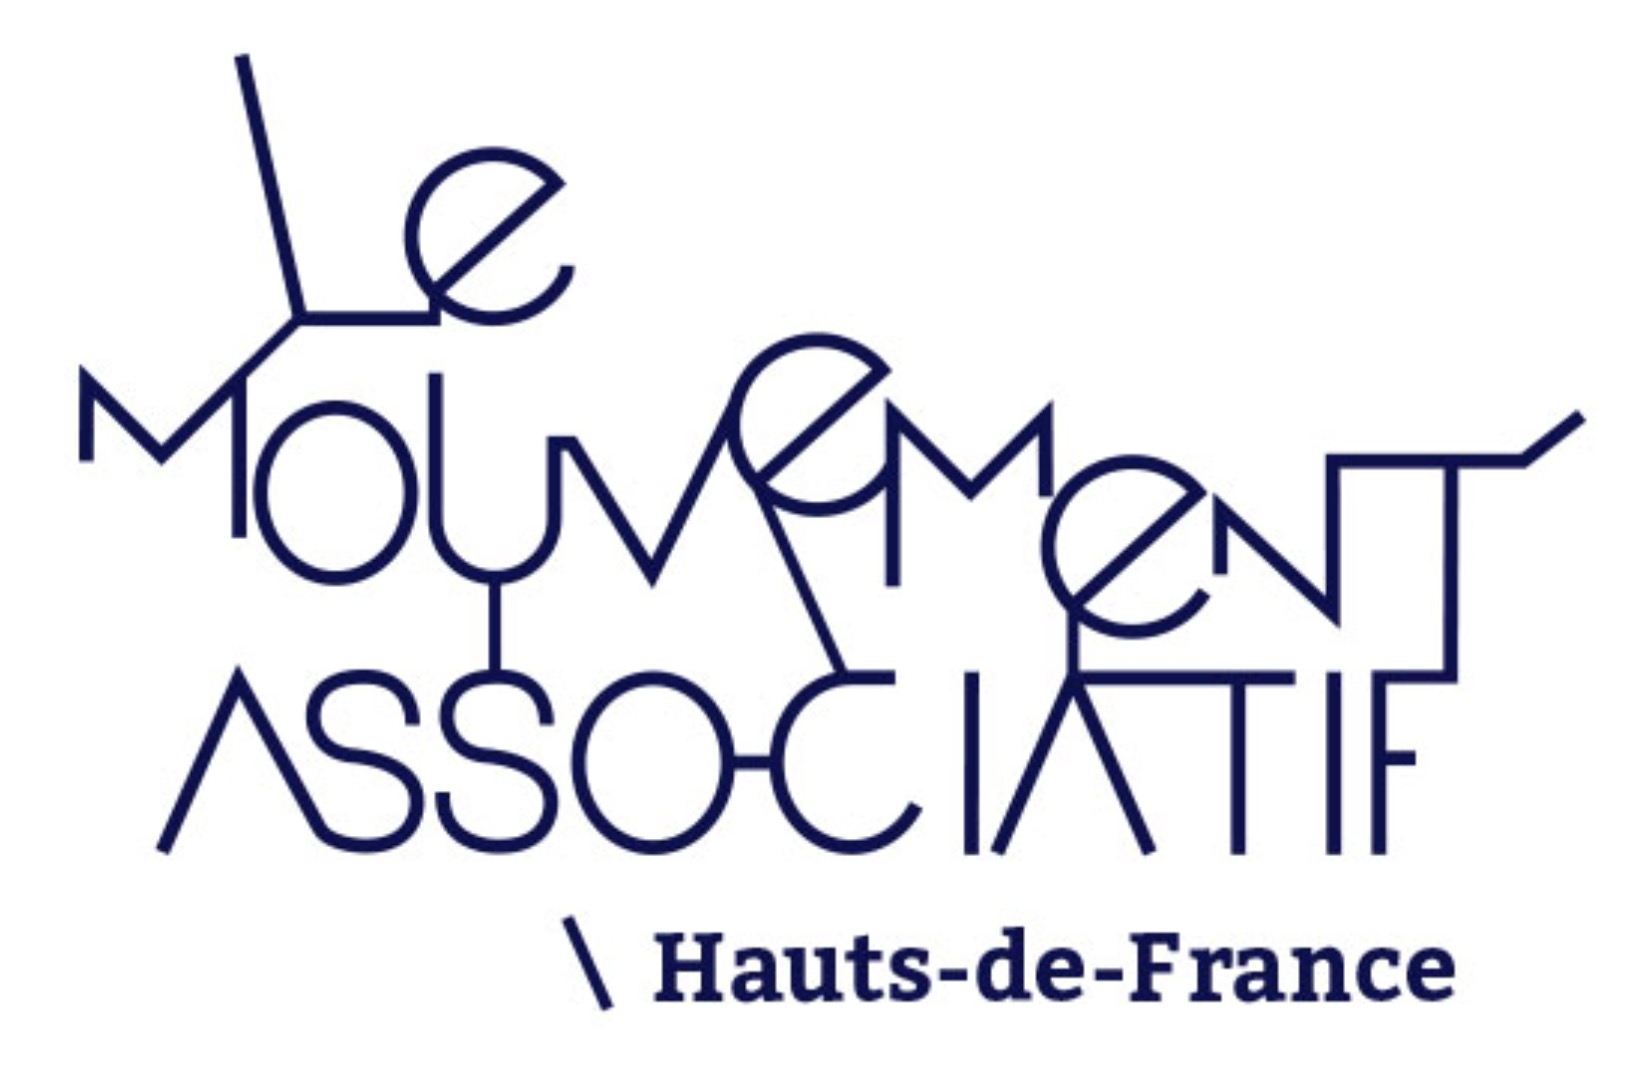 logo mouvement associatif